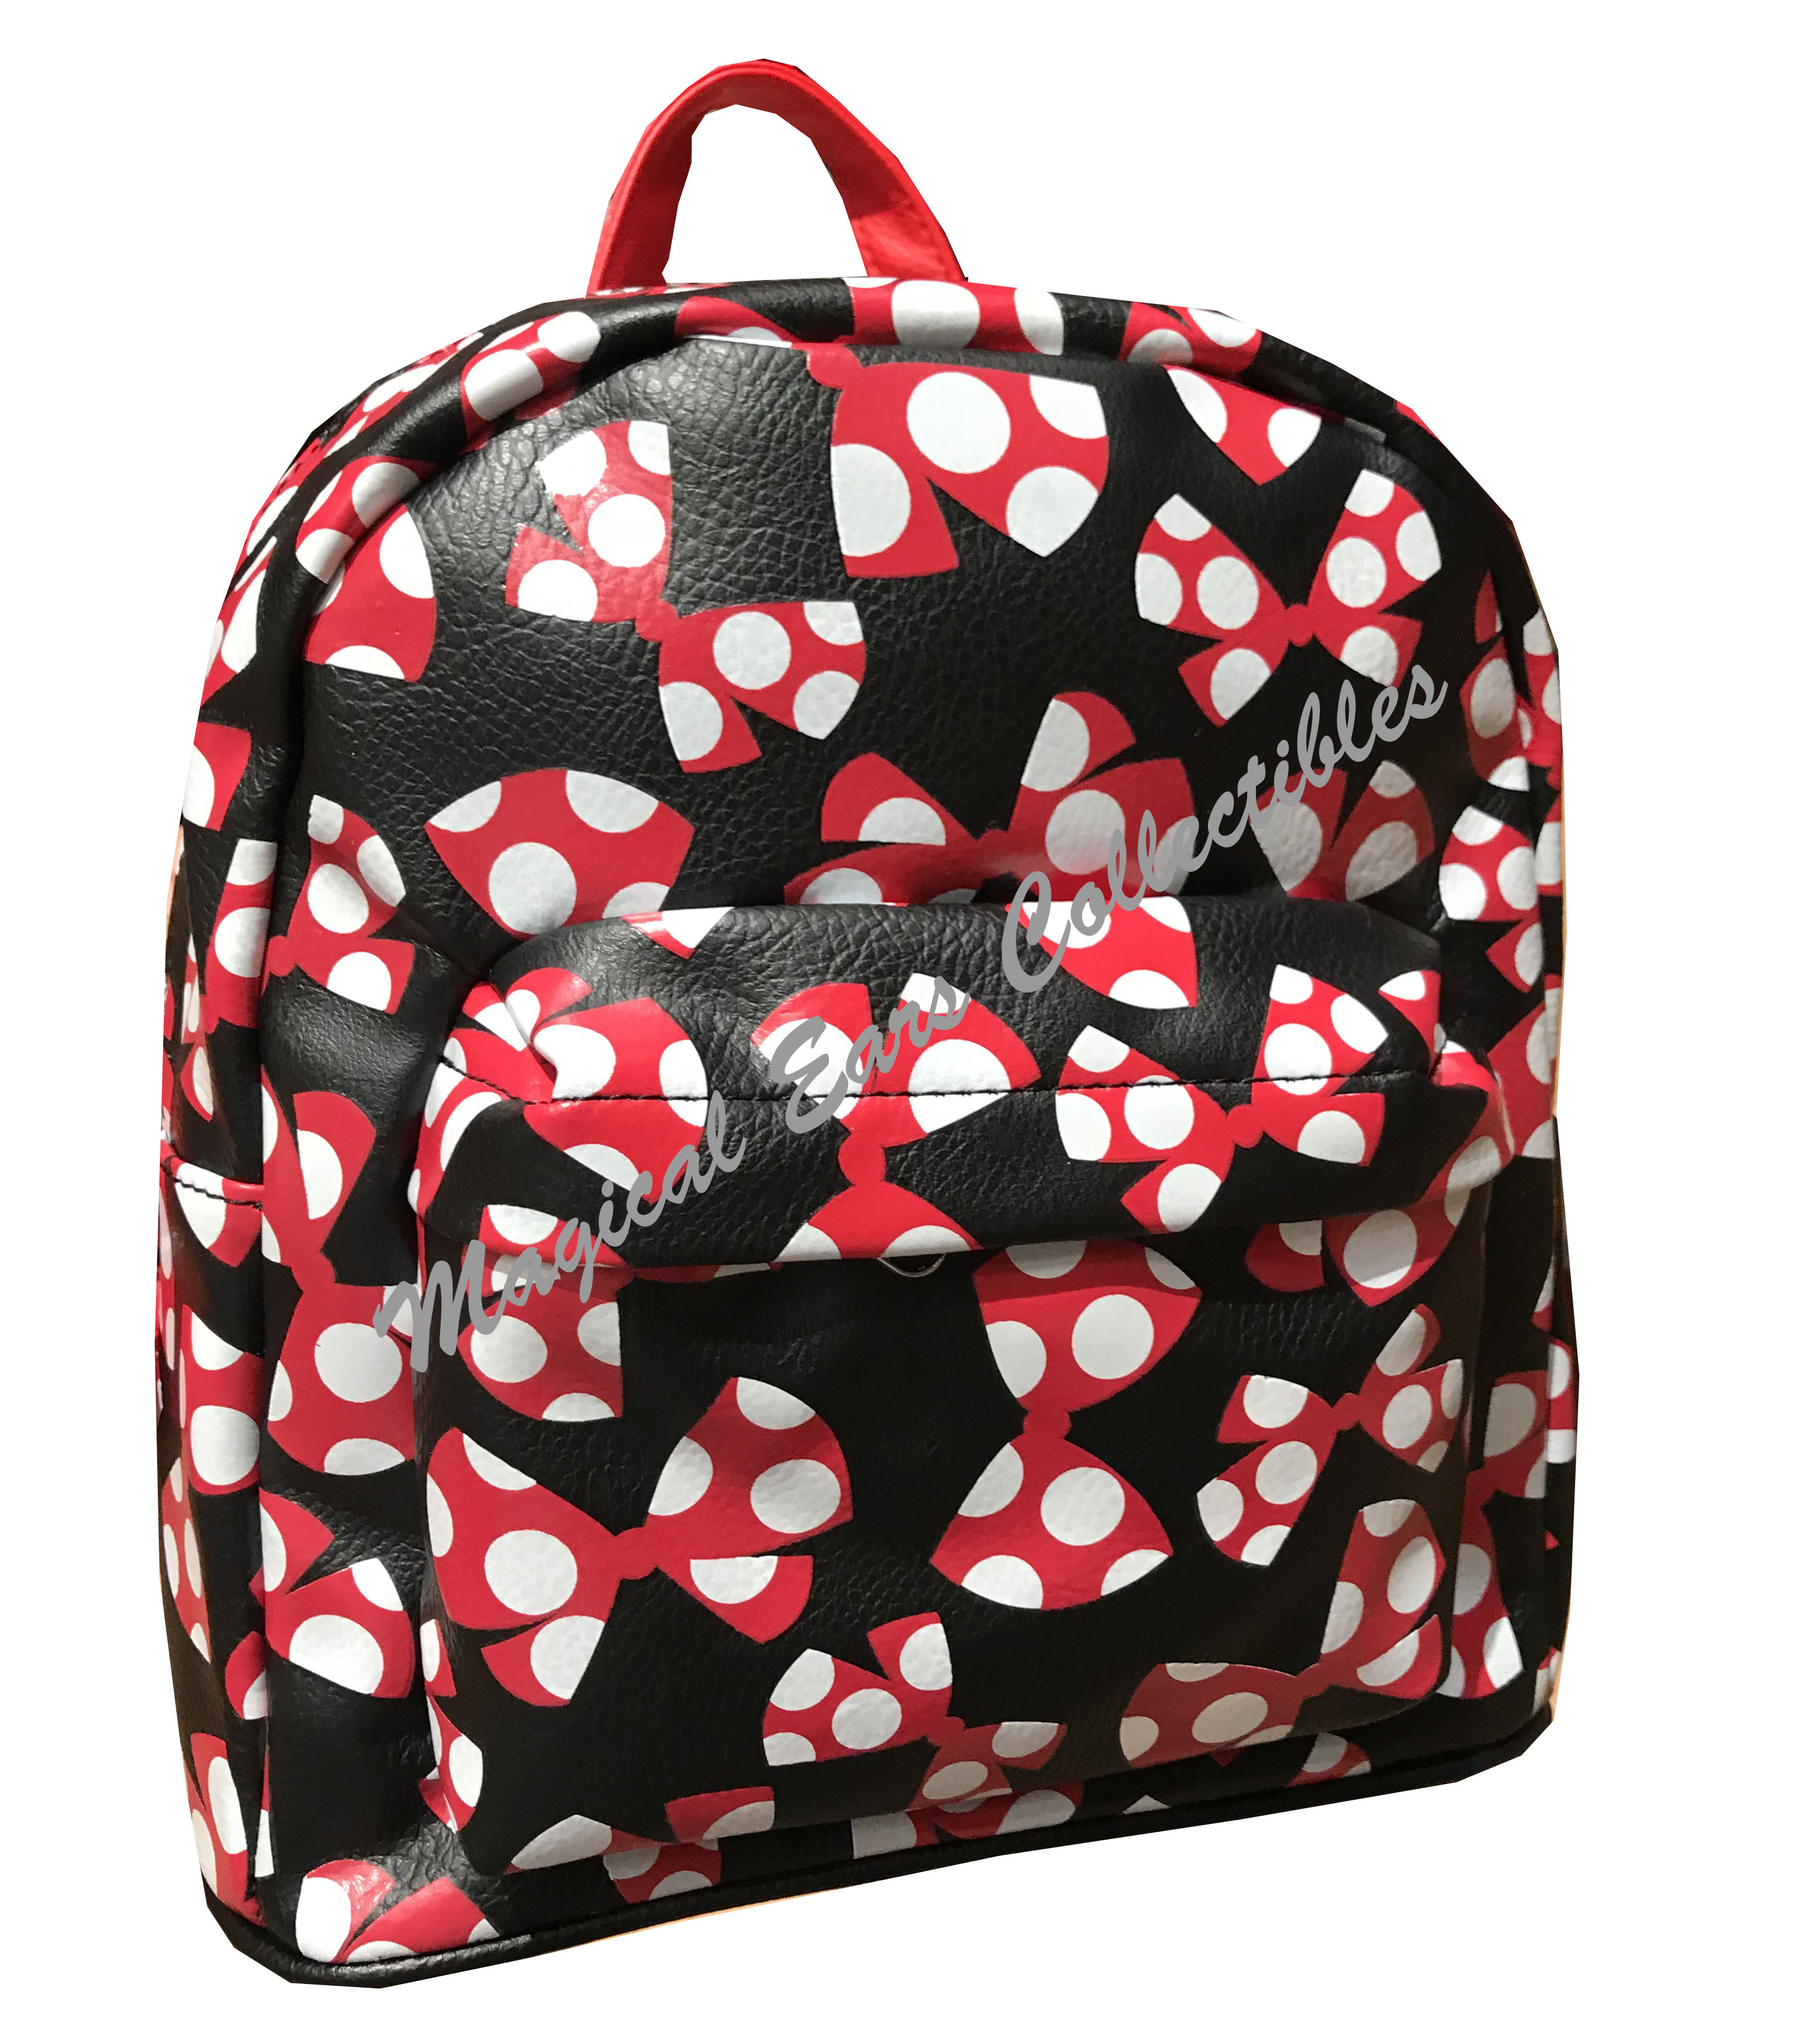 f4e2d8d70a1d Add to My Lists. Disney Backpack Bag - Minnie Mouse Bows All Over - Mini